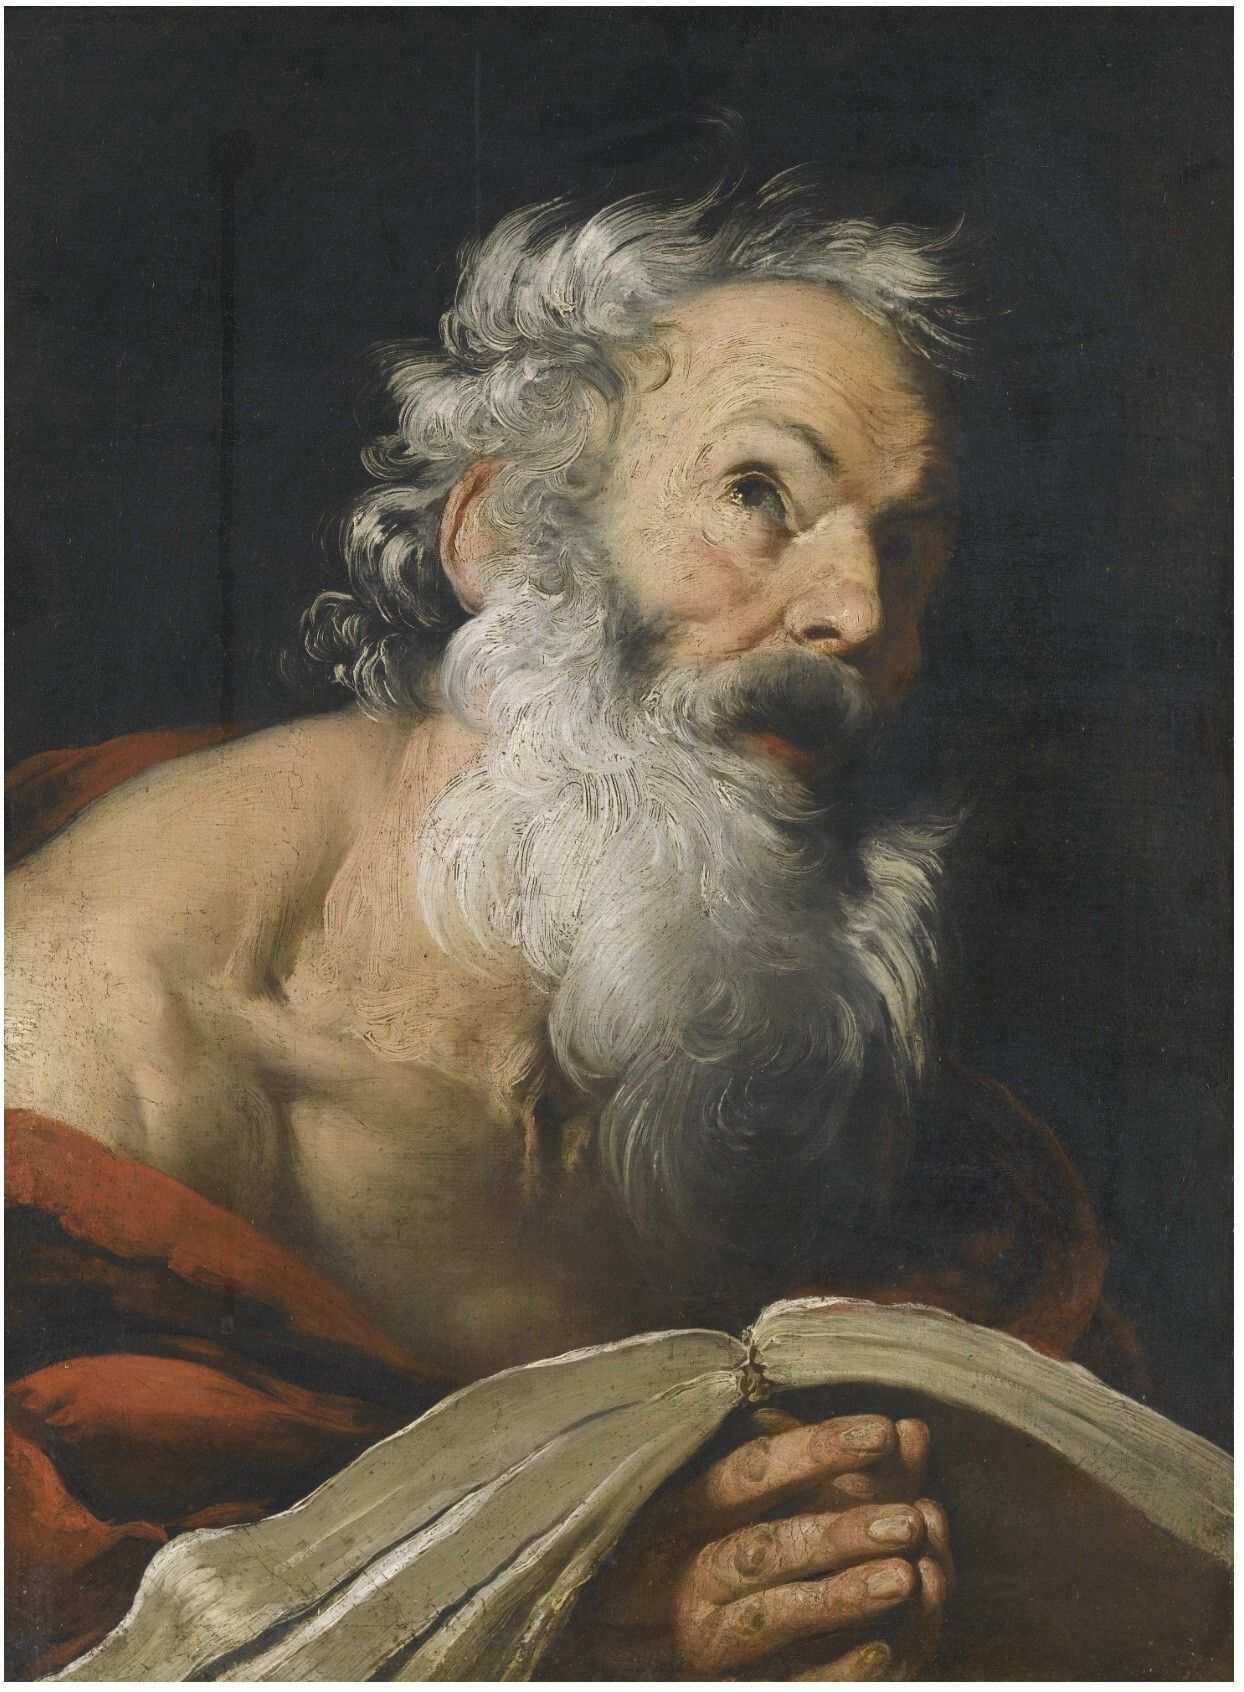 St. Jerome Meditating over the Bible, Bernardo Strozzi's (1581–1644)